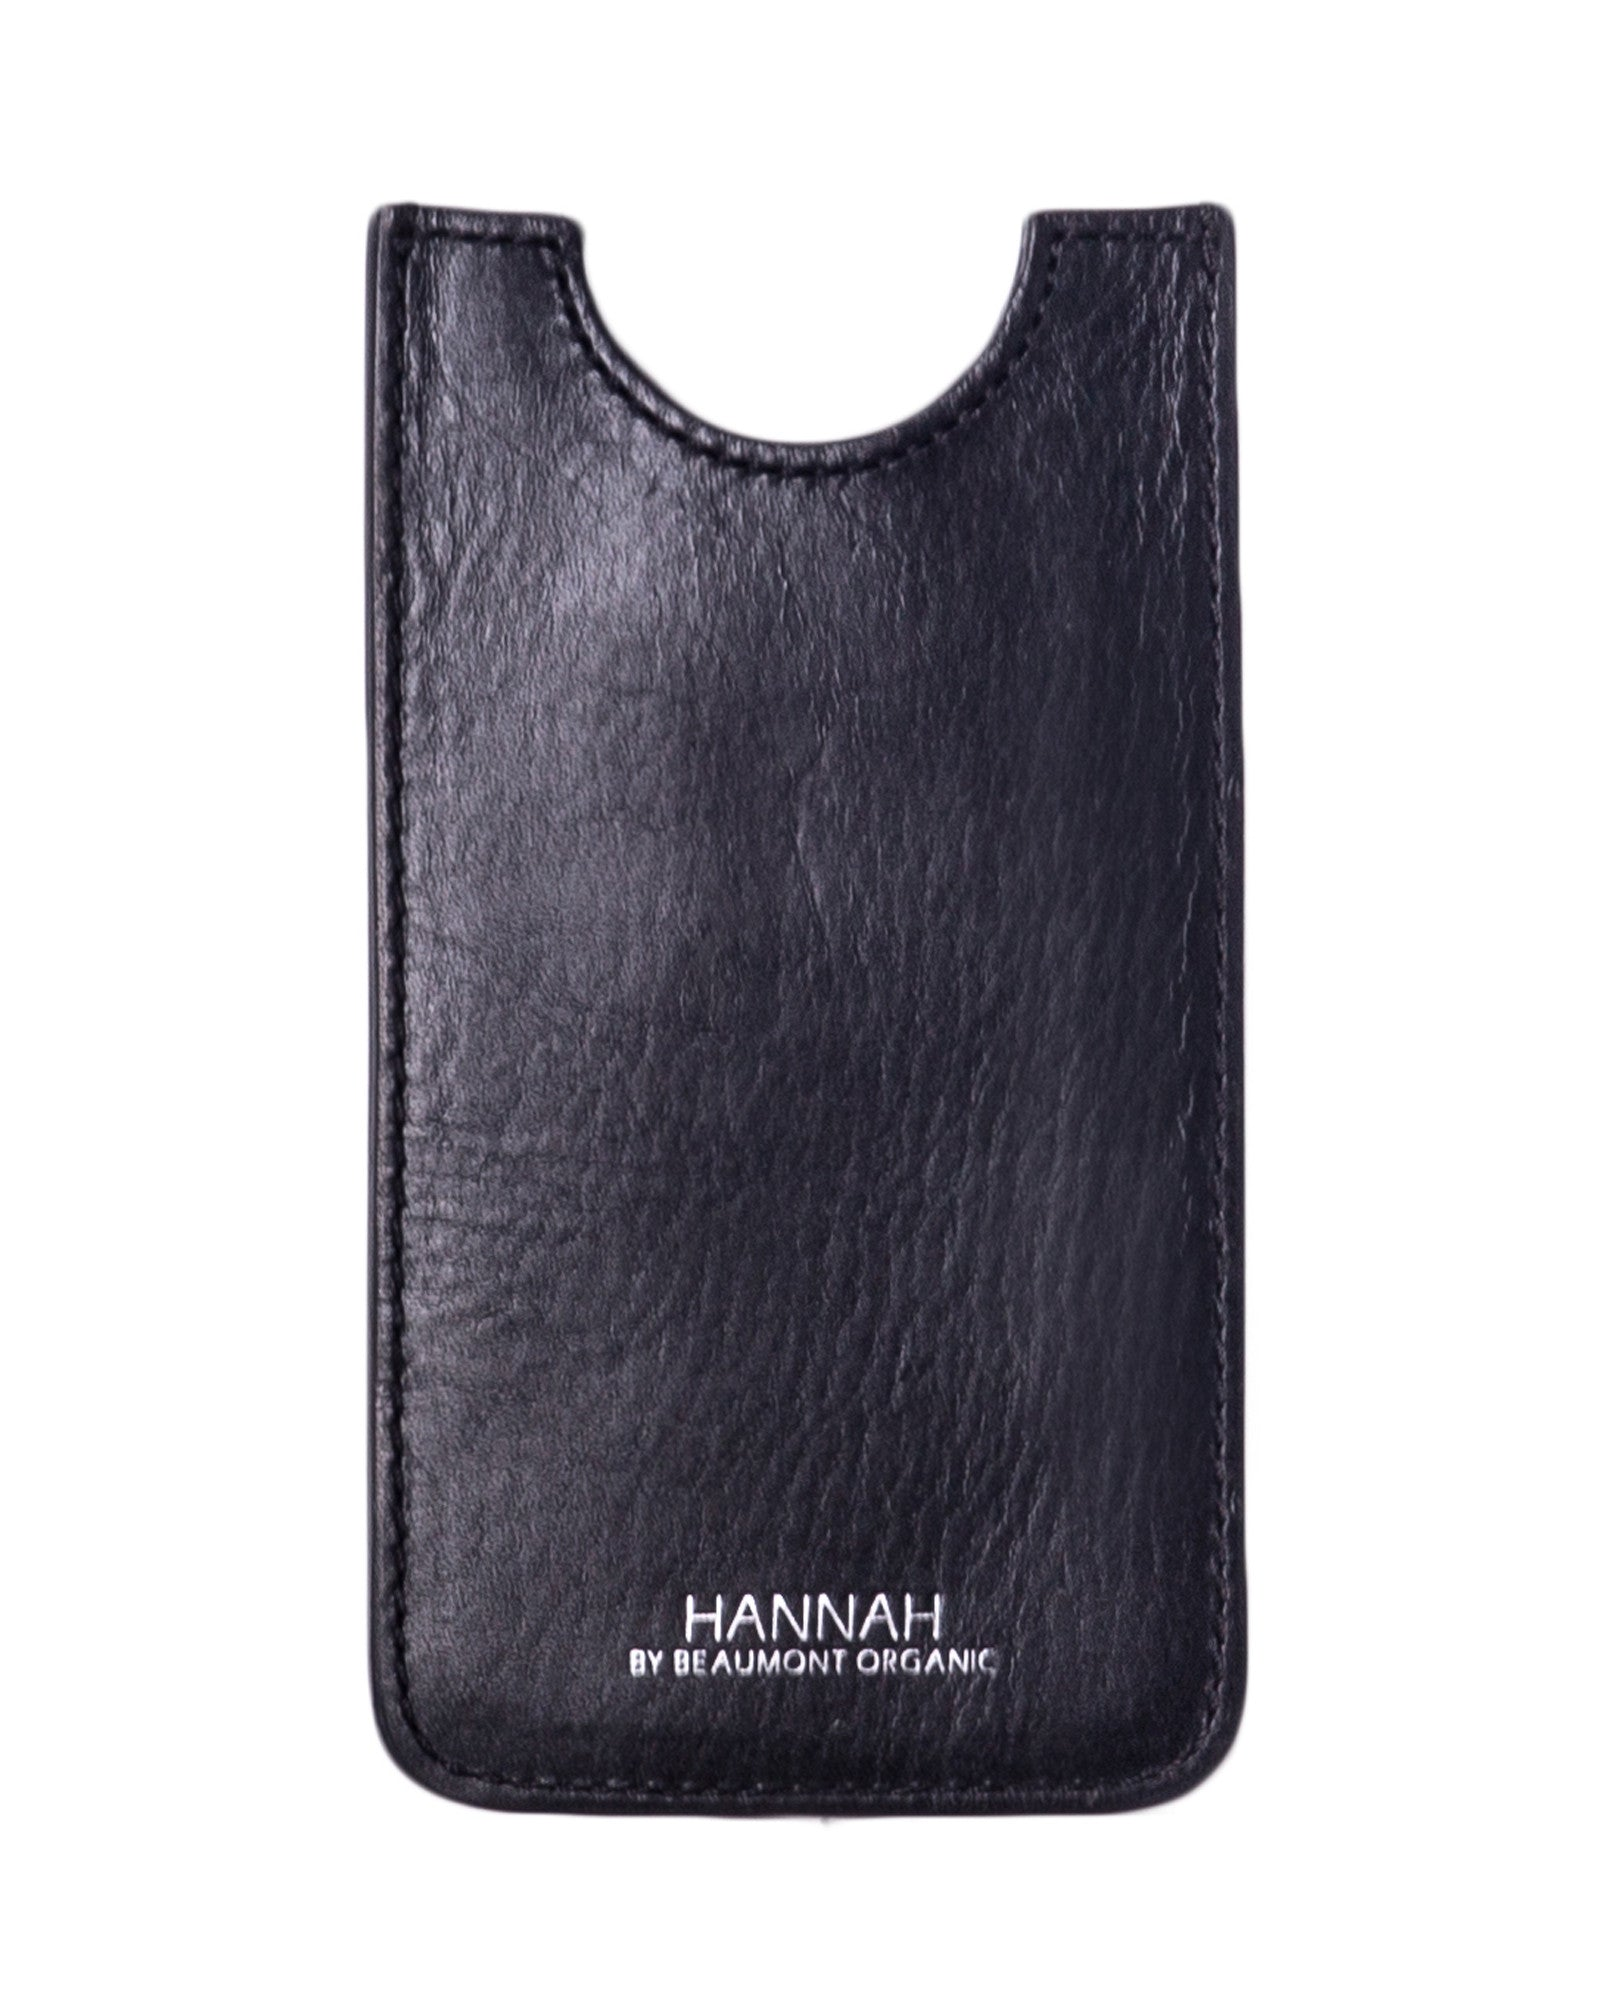 SORRENTO Leather Phone Case In Black from Beaumont Organic